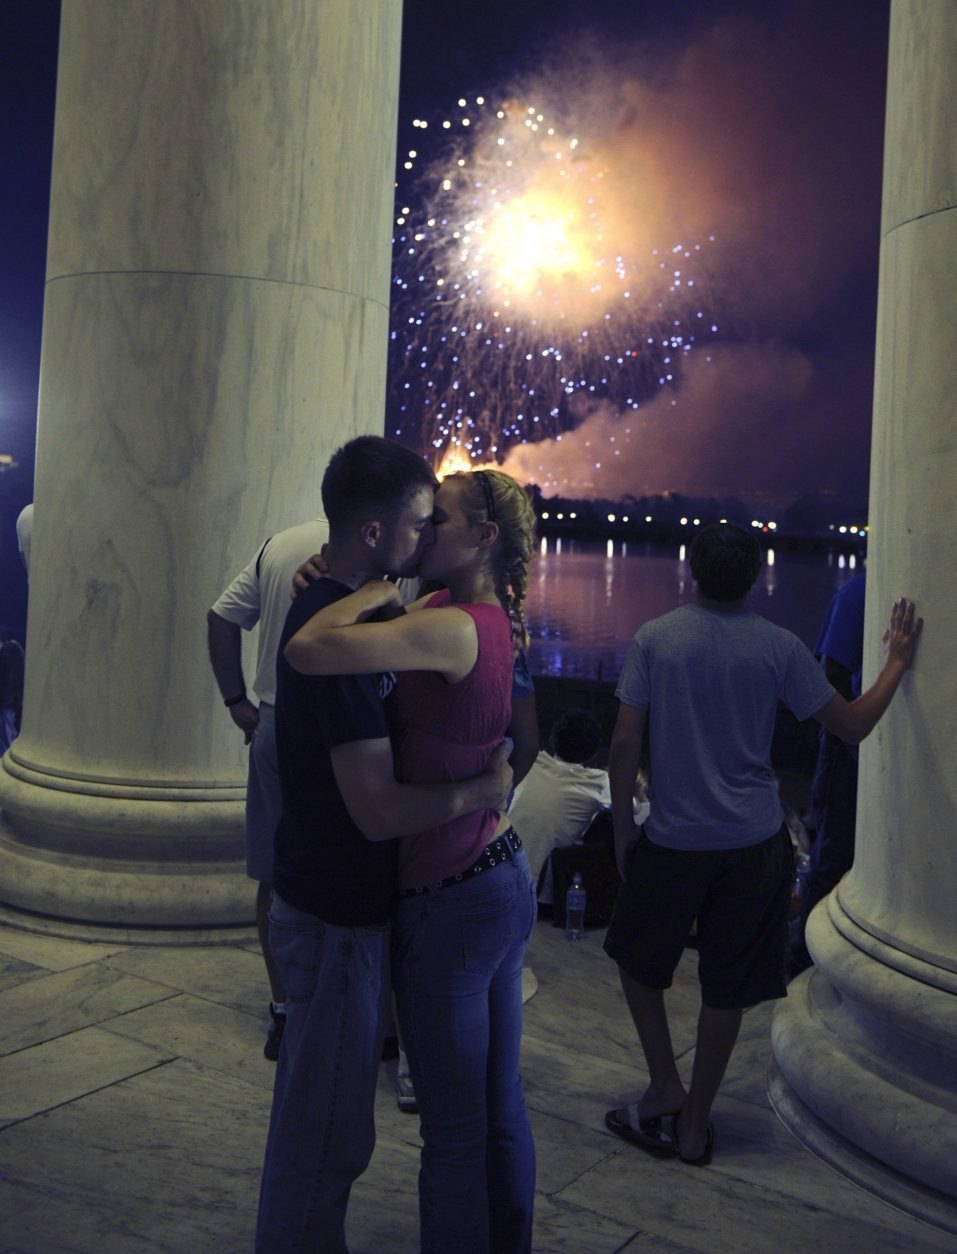 U.S. Marines Jenna Ahles, 20, of La Crosse, Wis., right, and Jack Eubanks, 25, of Kennesaw, Ga., kiss while fireworks explode over Washington while viewing from the Jefferson Memorial, Monday, July 4, 2011. (AP Photo/Cliff Owen)